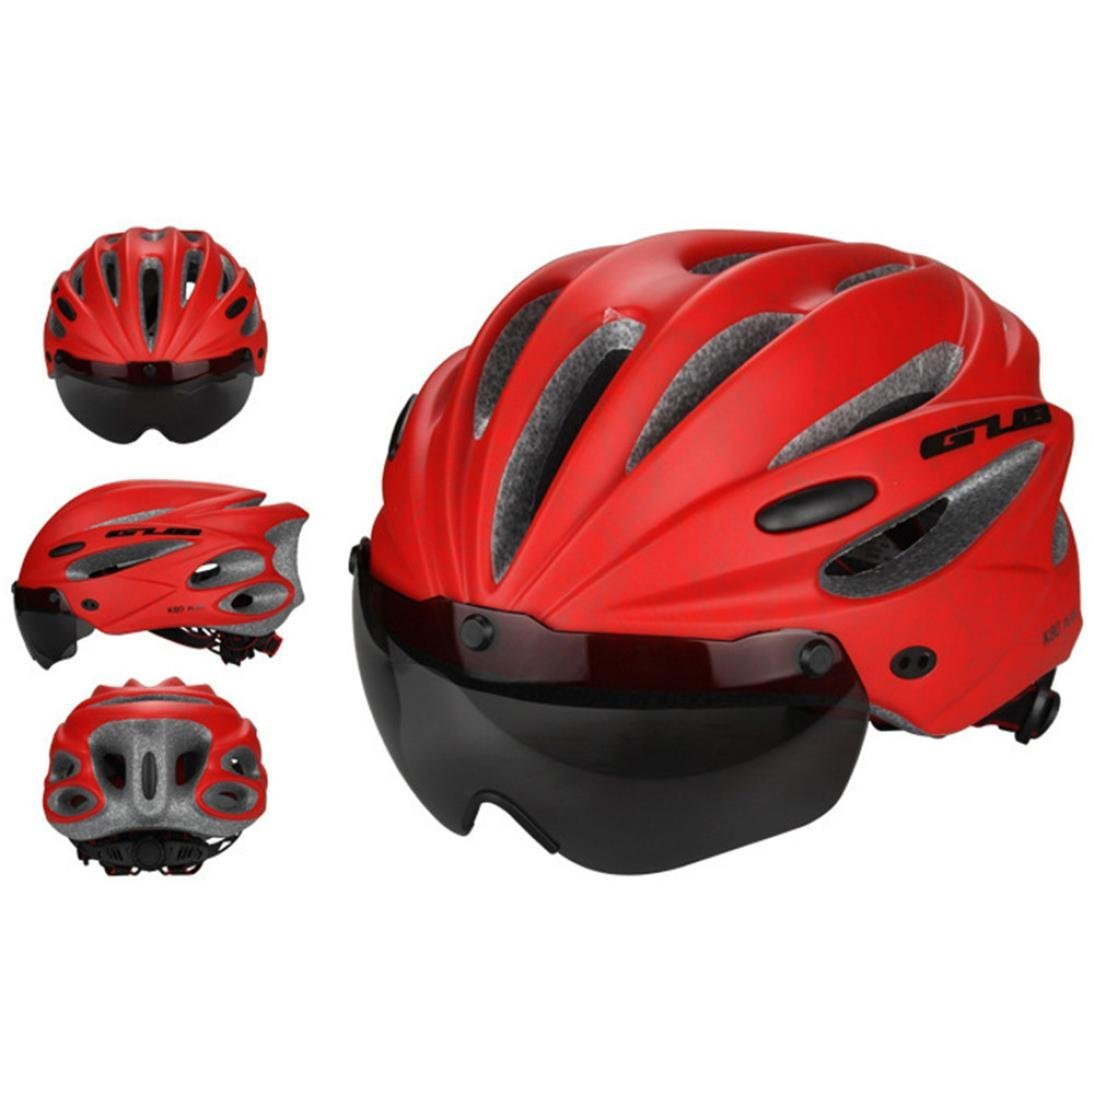 GUB K80 [ Magnet Goggles Integrated Helmet ] Mountain Bike ride Helmet [ EPS Wear Glasse Helmet ] (Orange)